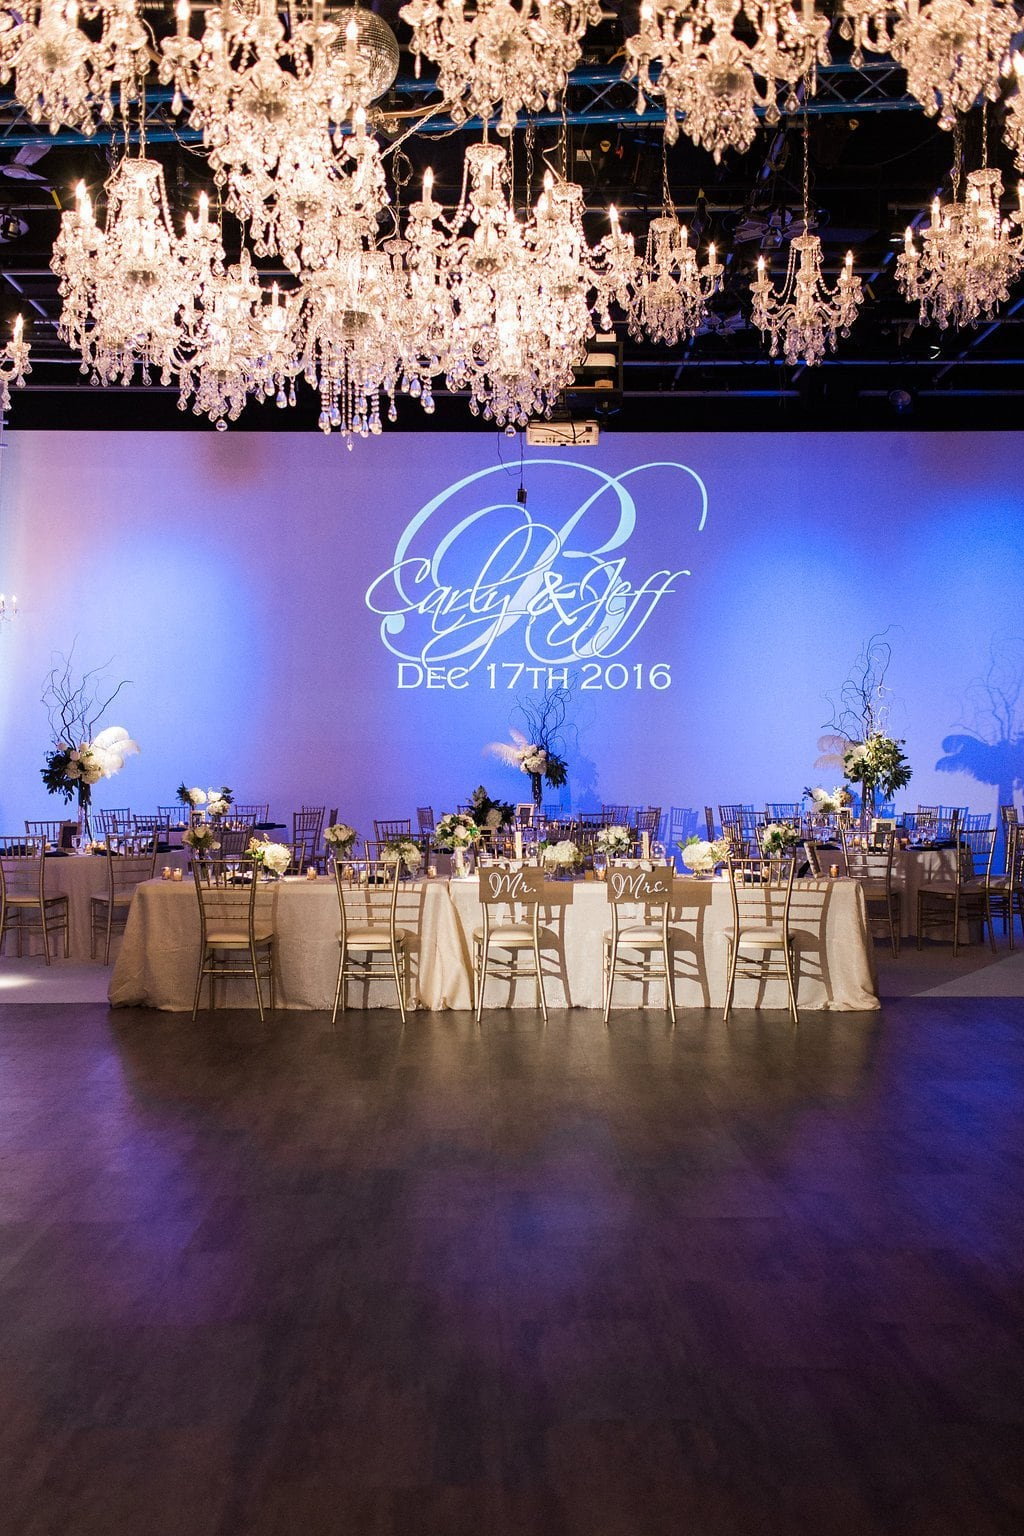 Gold and Navy blue accents with chandeliers and blue uplighting